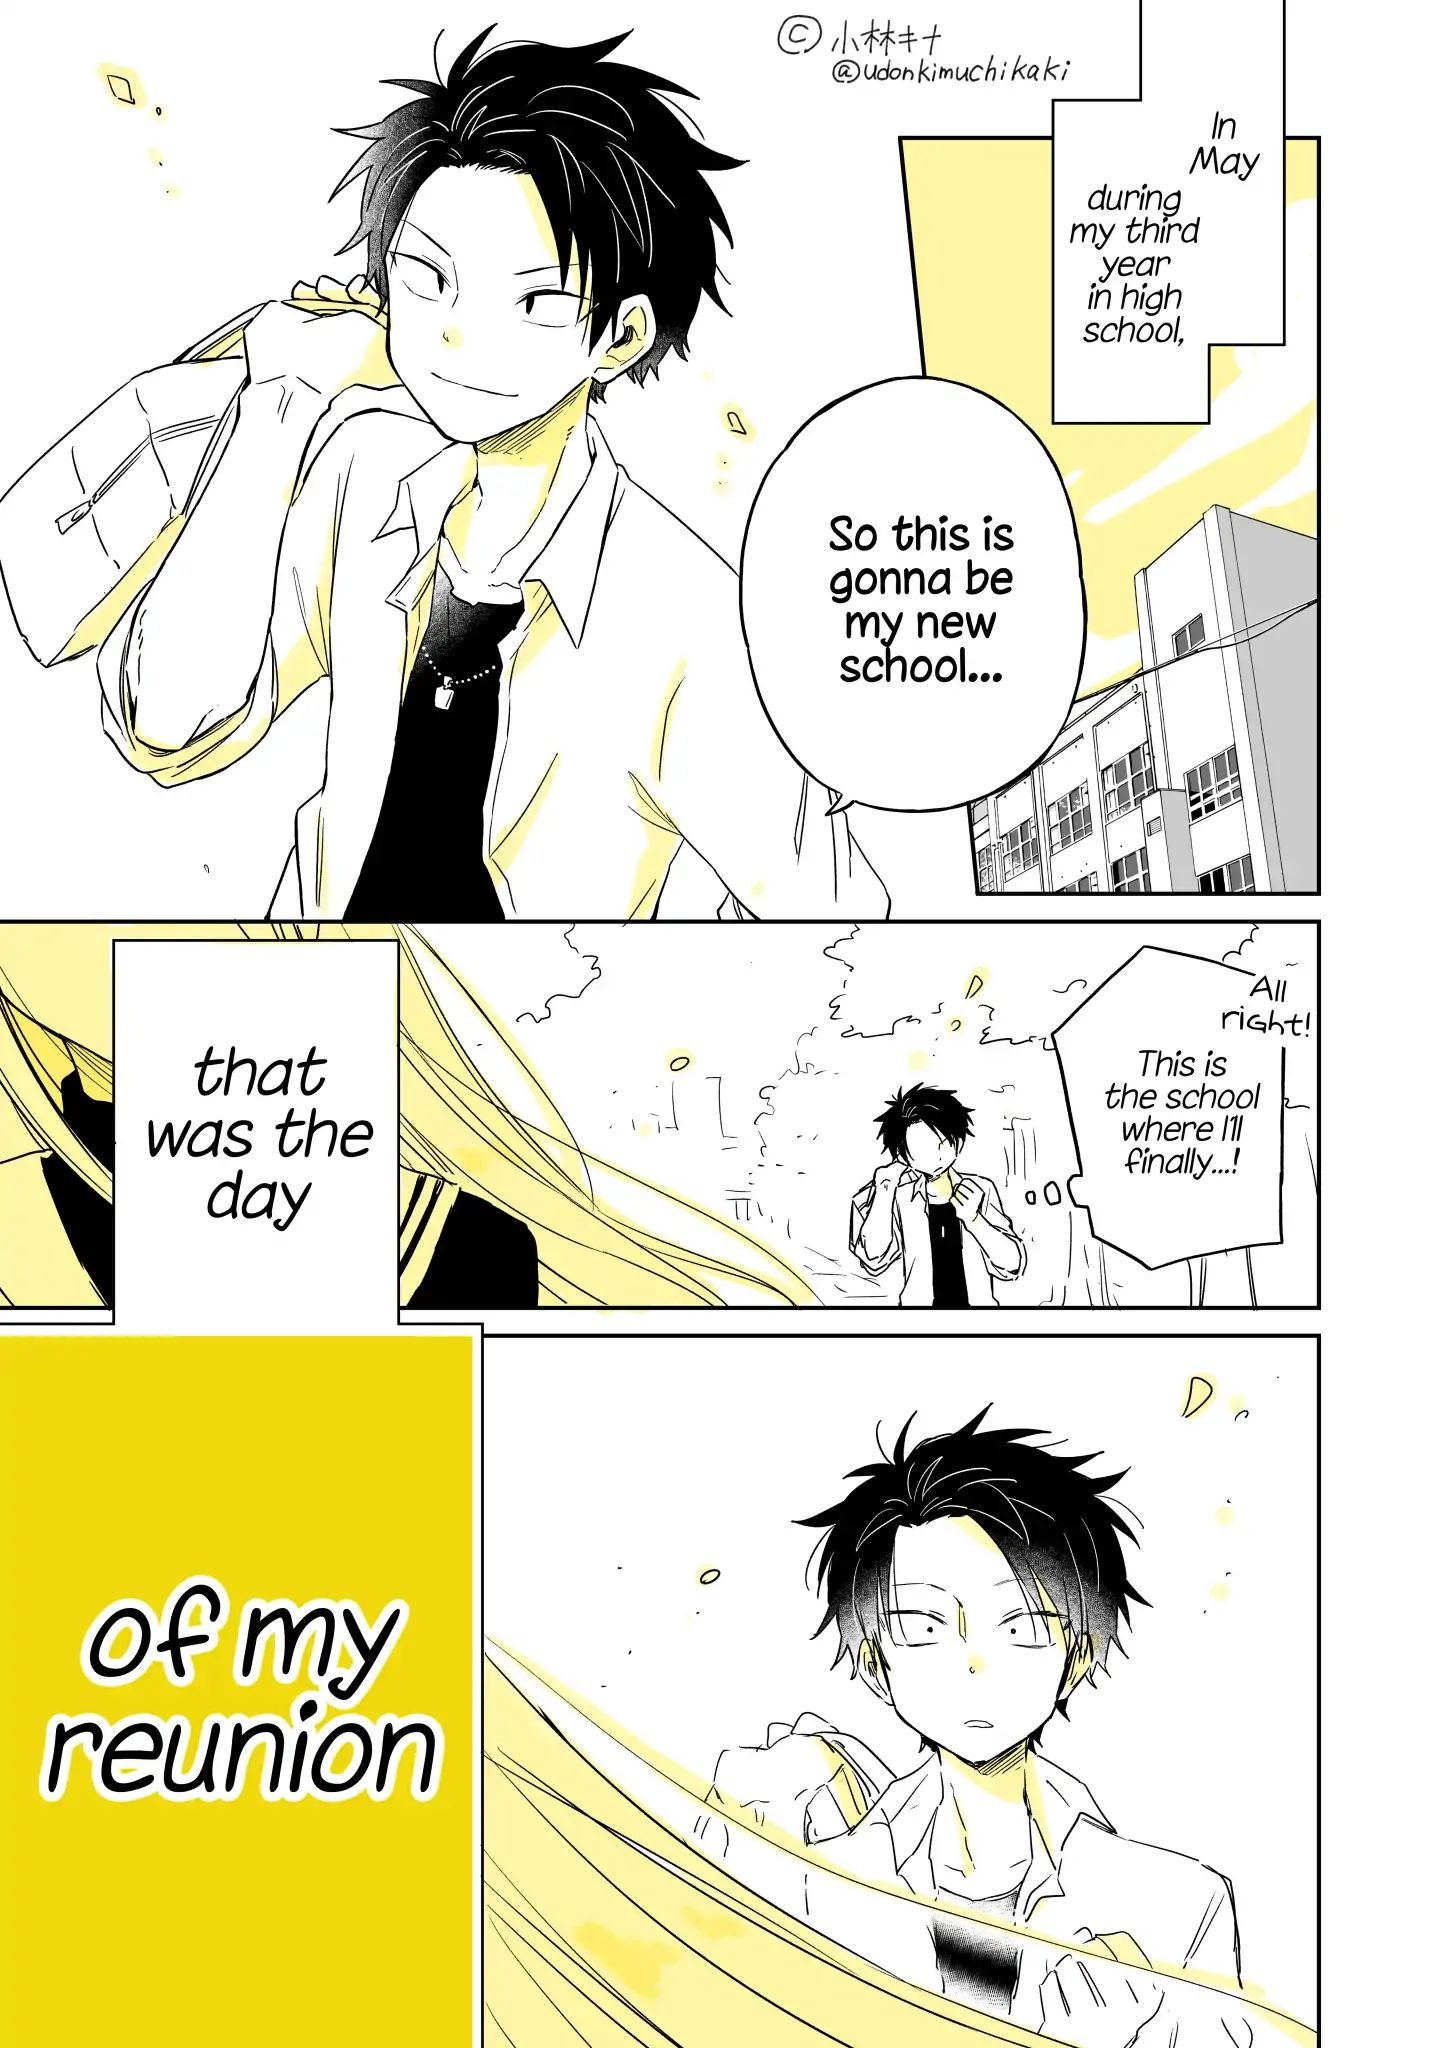 Manga About a Guy Who's Been Destroyed From His First Love Being a Pretty Girl - Chapter 1 Page 1